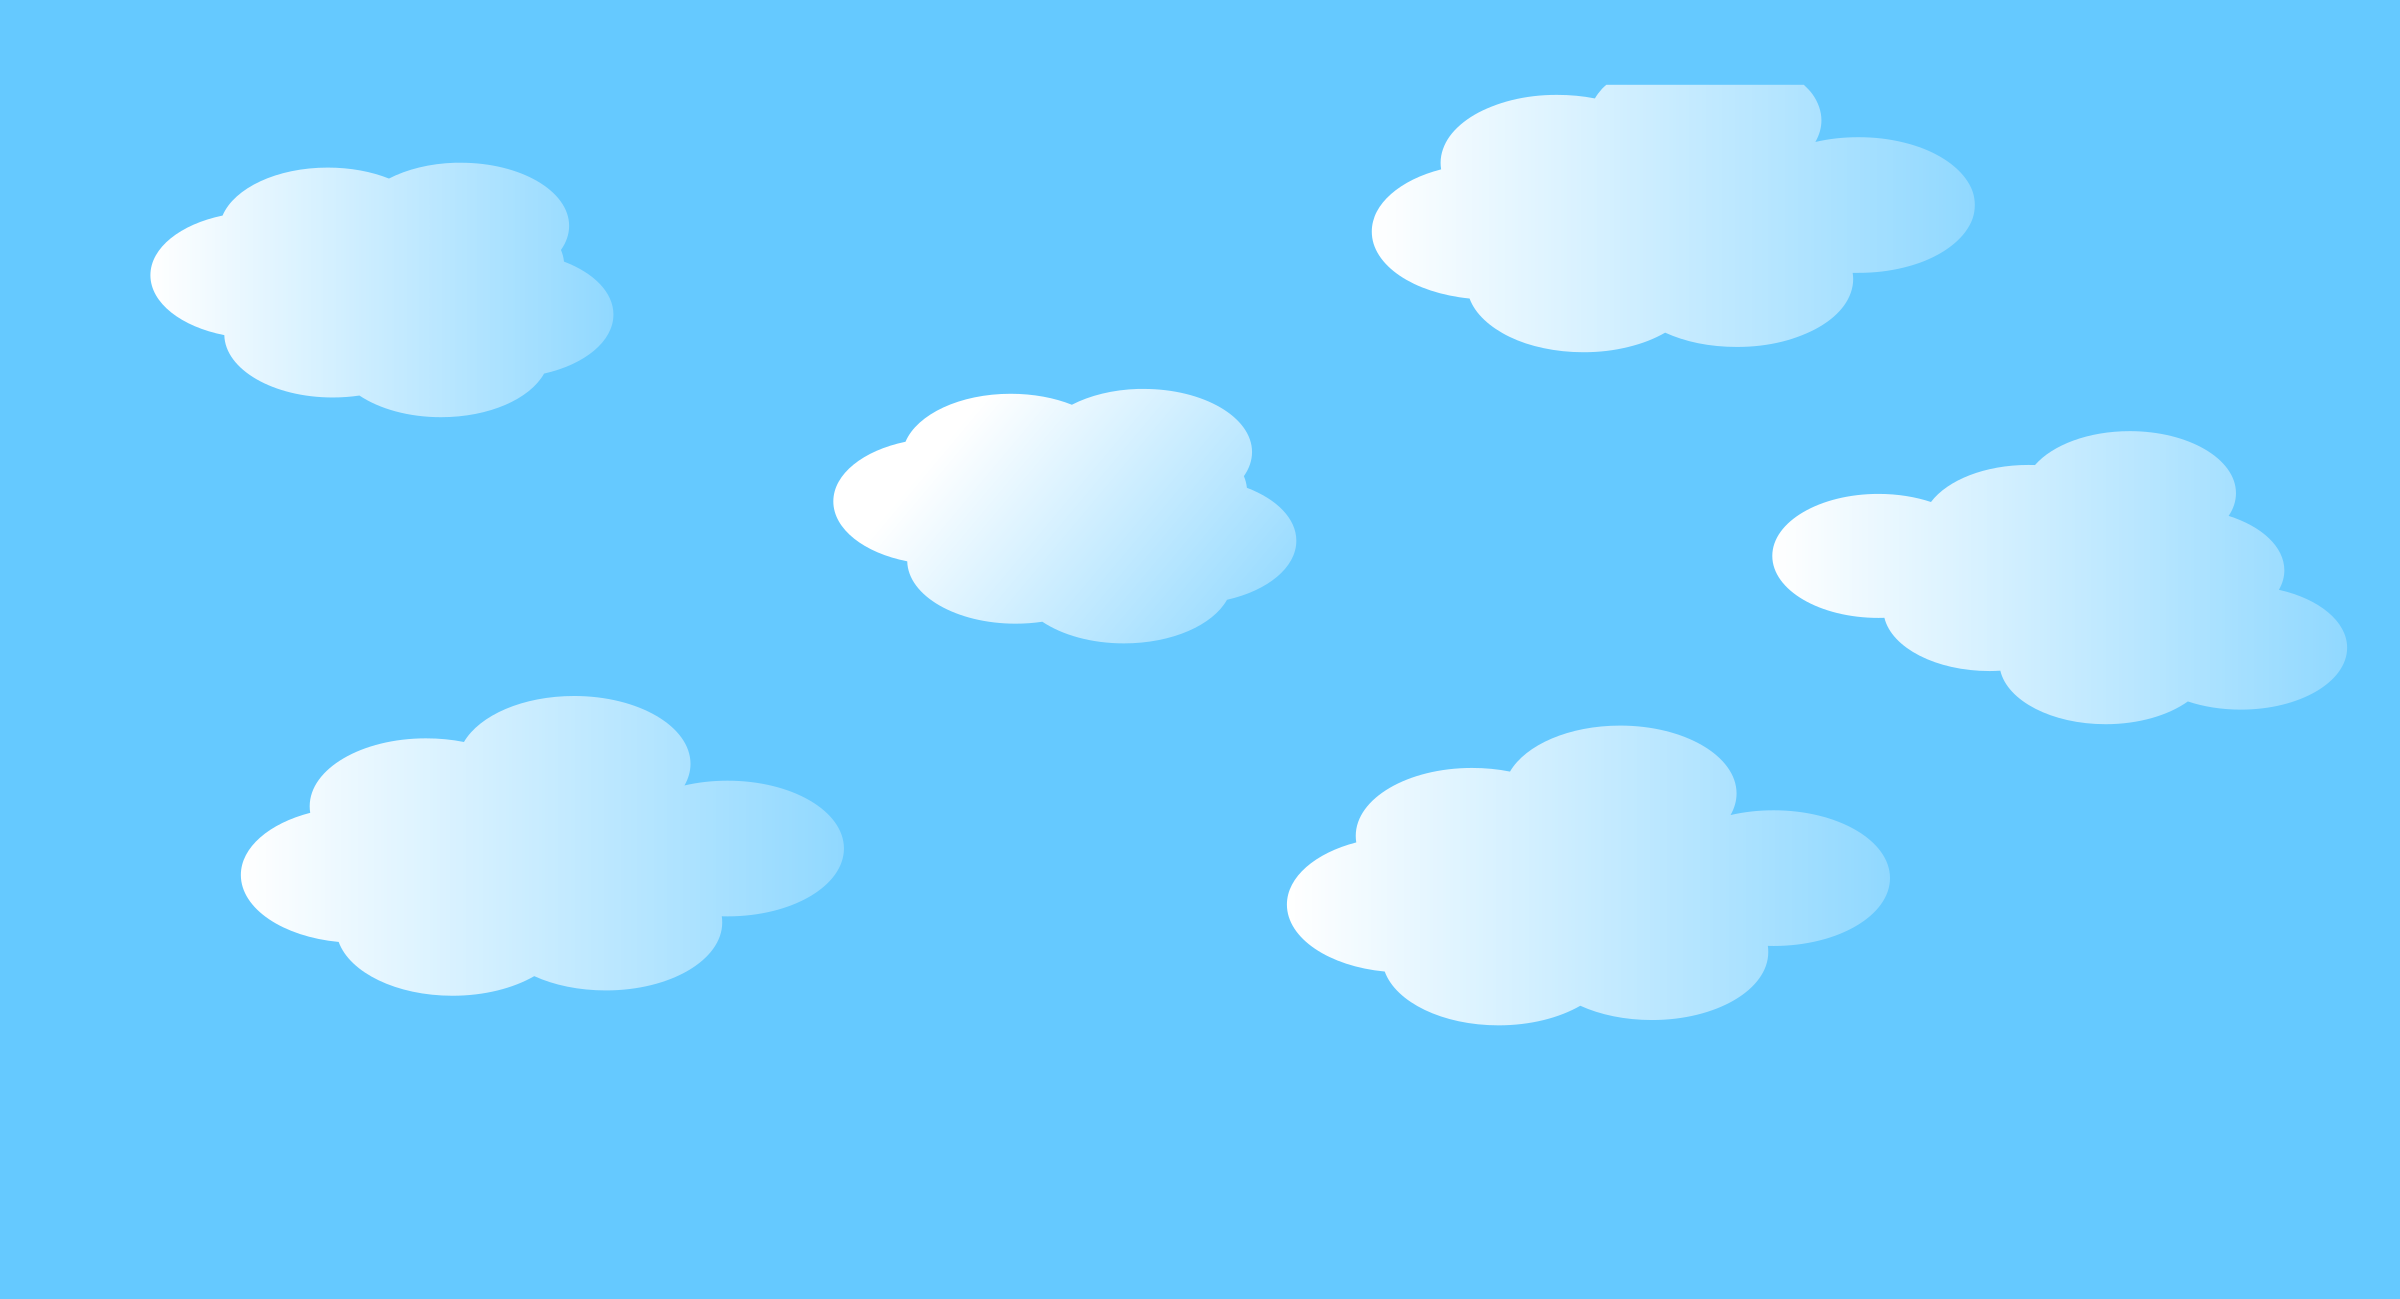 Clouds clipart simple Clipart Simple Simple clouds clouds